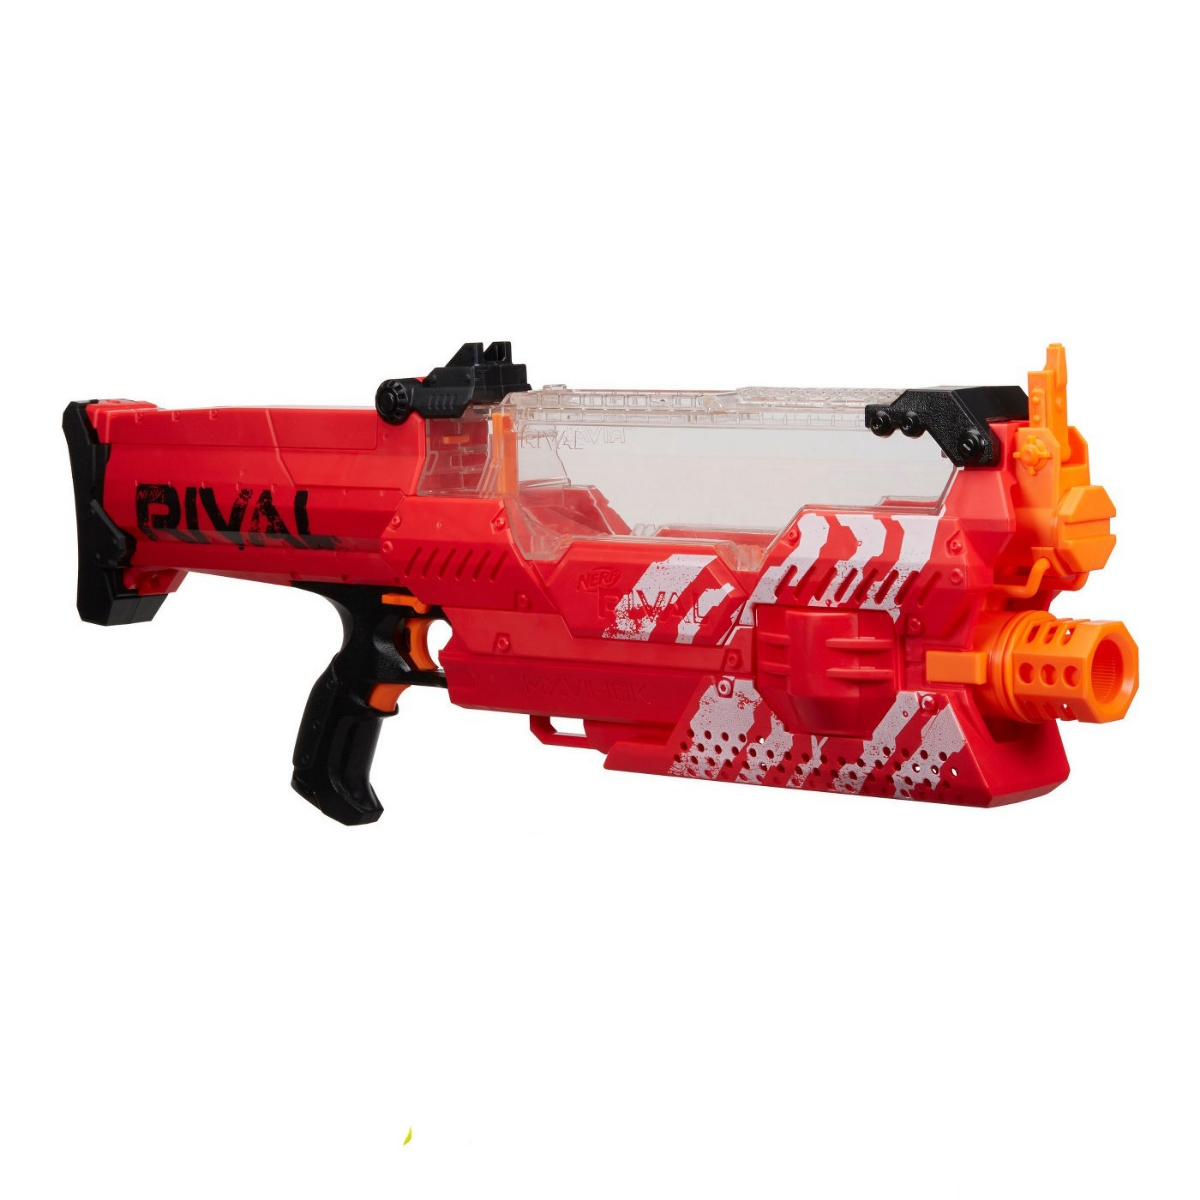 Nerf Rival Nemesis MXVII-10K Motorized Rapid Fire Blaster w/ 100 Rounds - Red